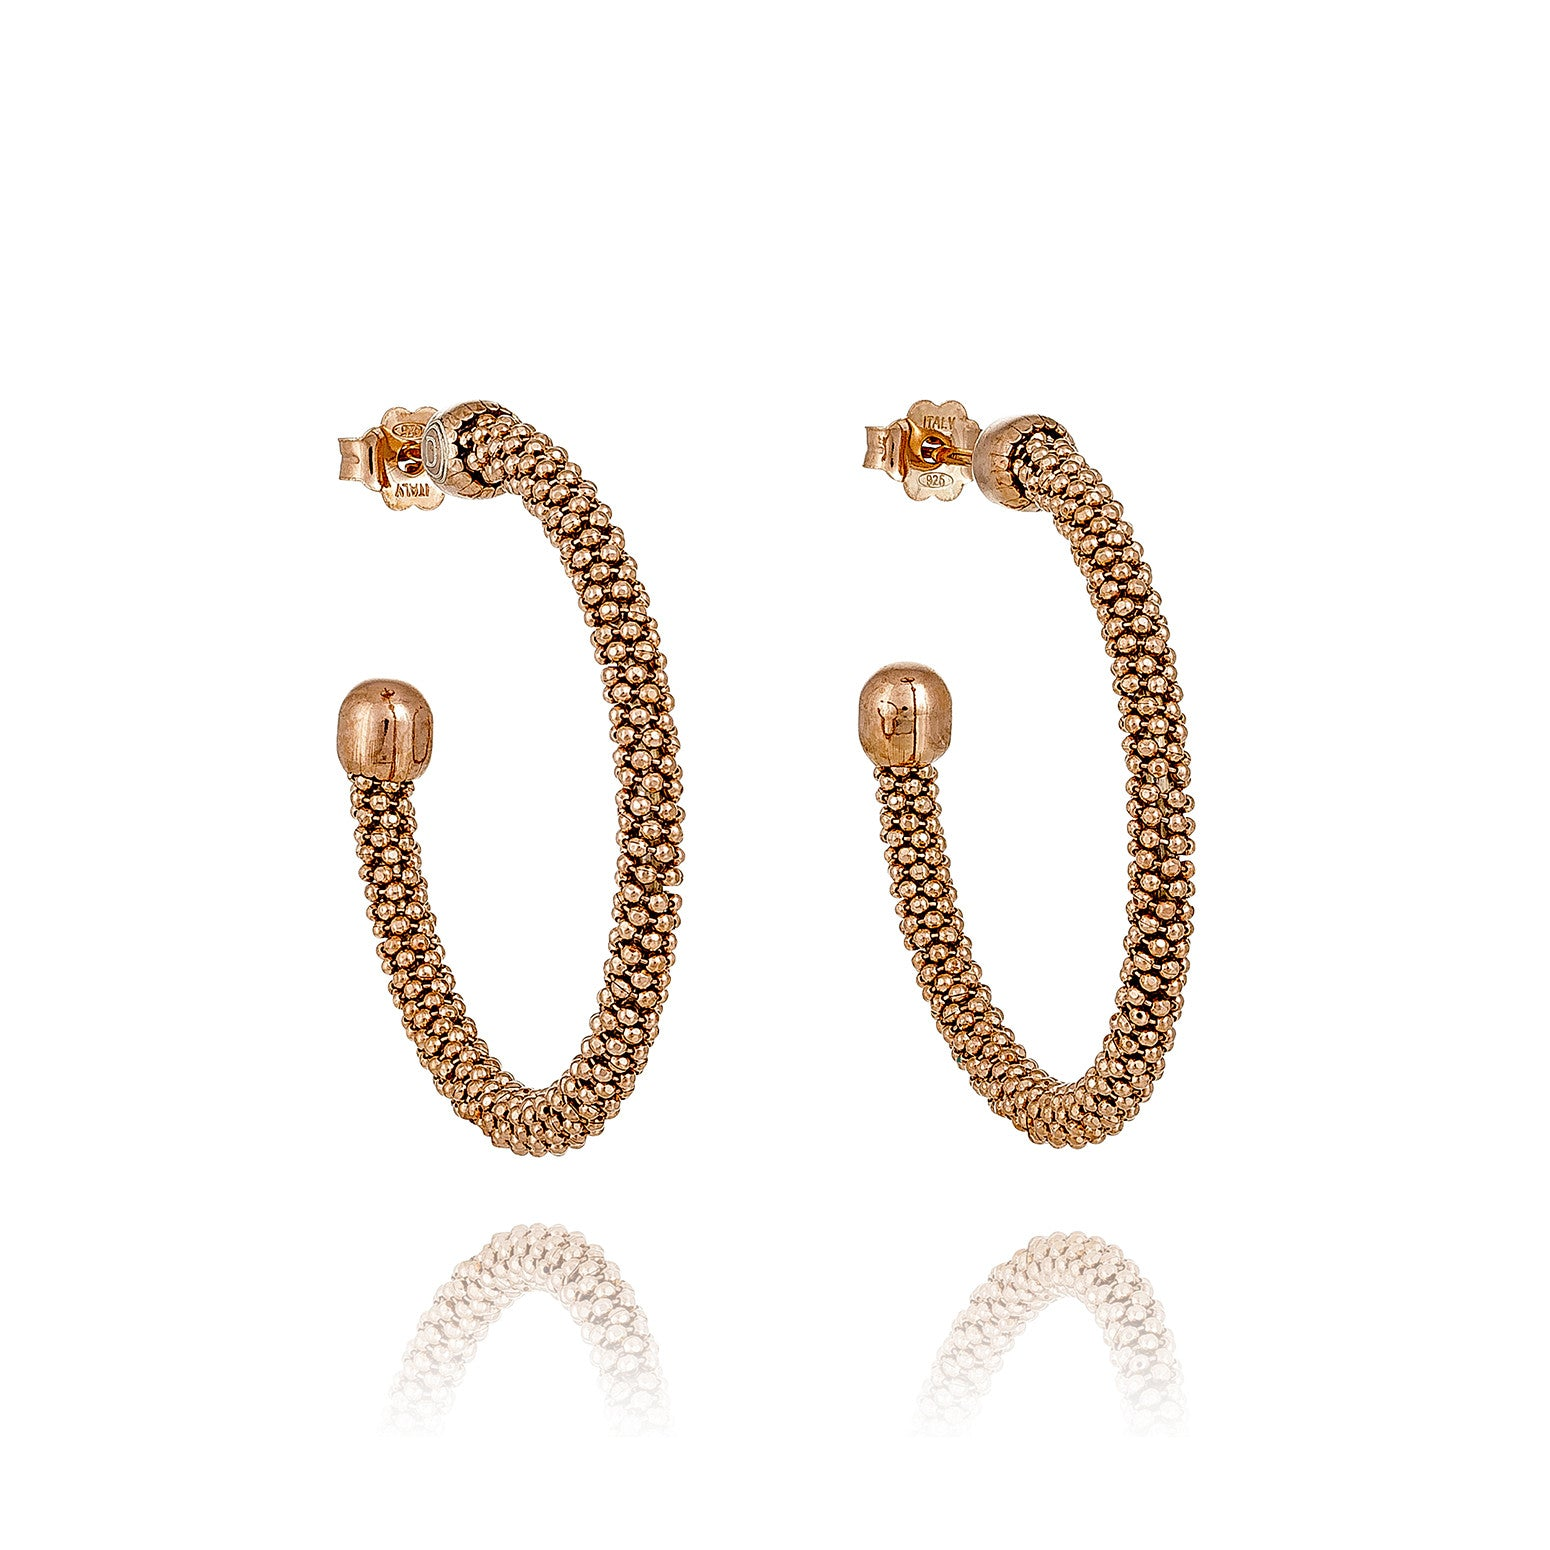 Durrah Jewelry Spring Hoop Earrings